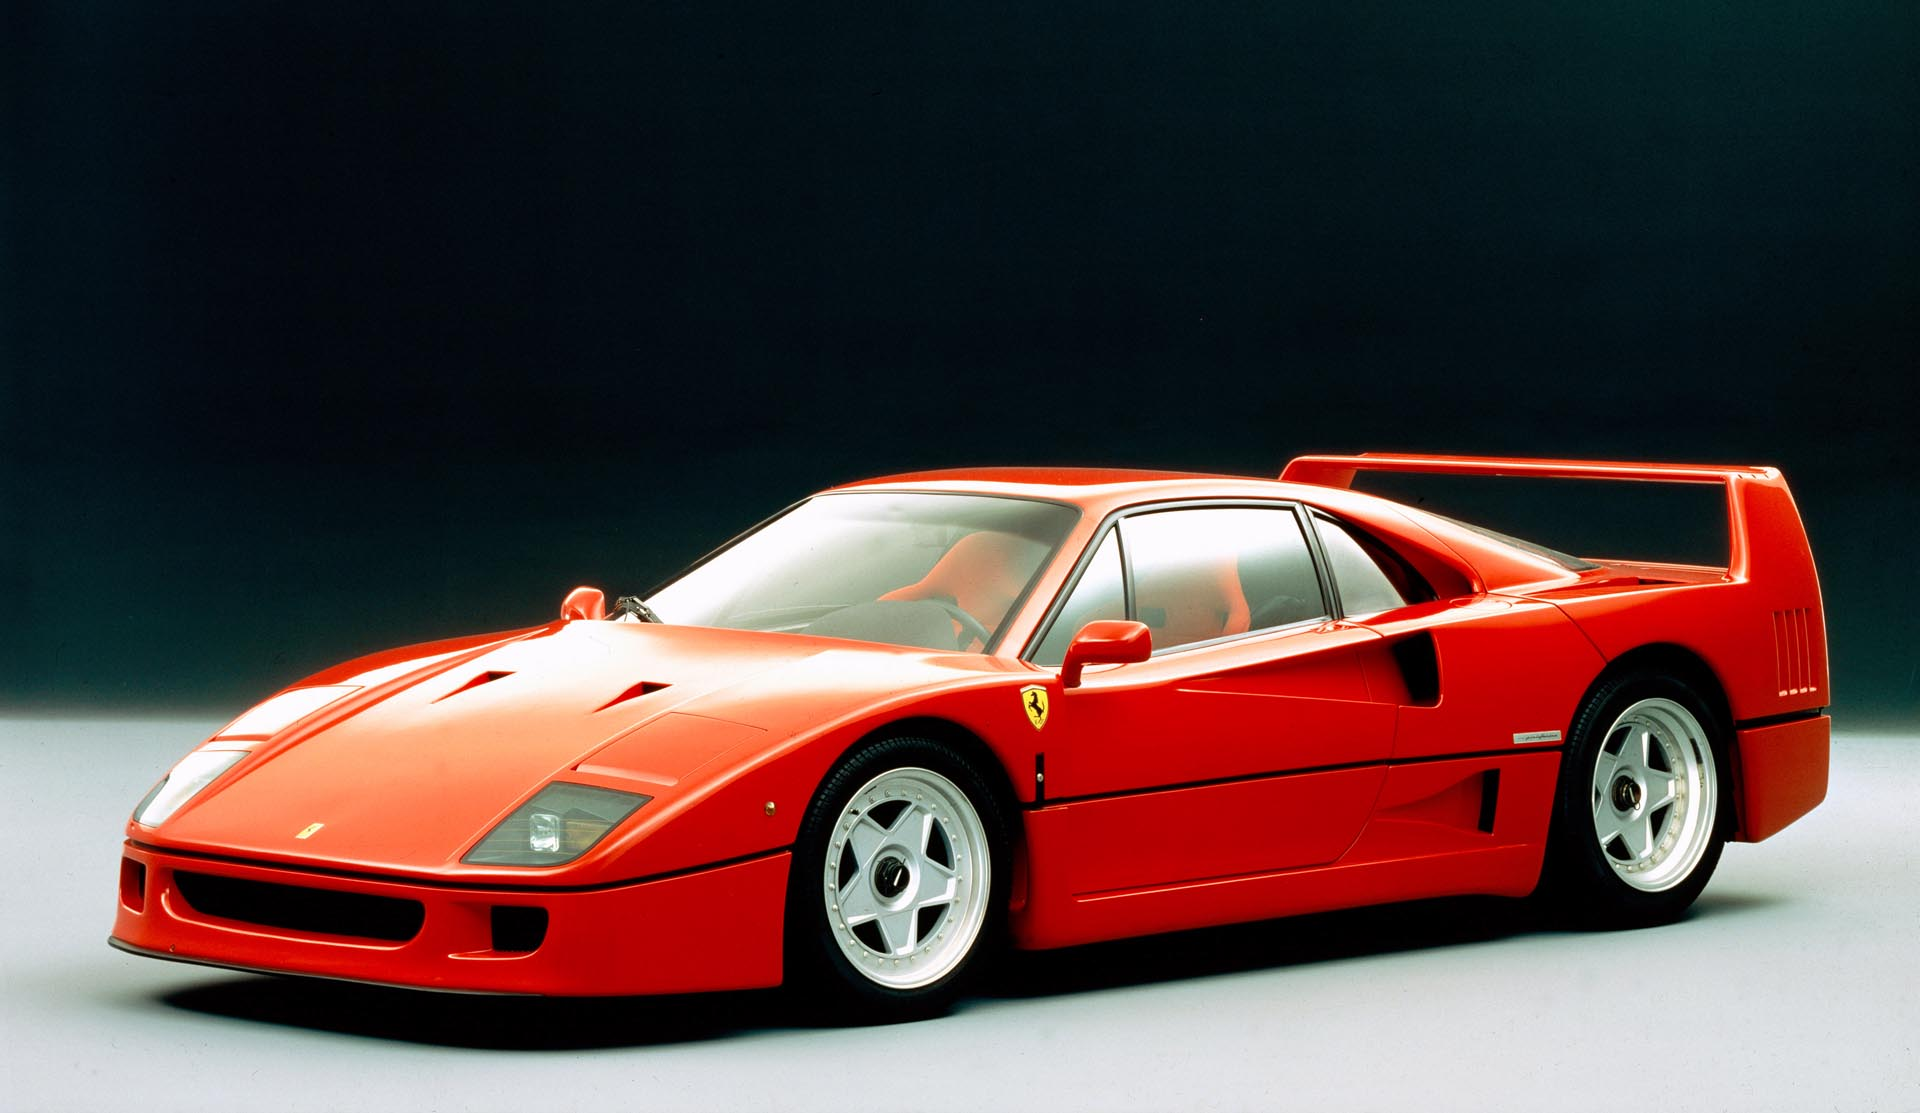 Fitted with the same twin-turbo heart as the 288 GTO, the F40 was essentially a racecar for the road.